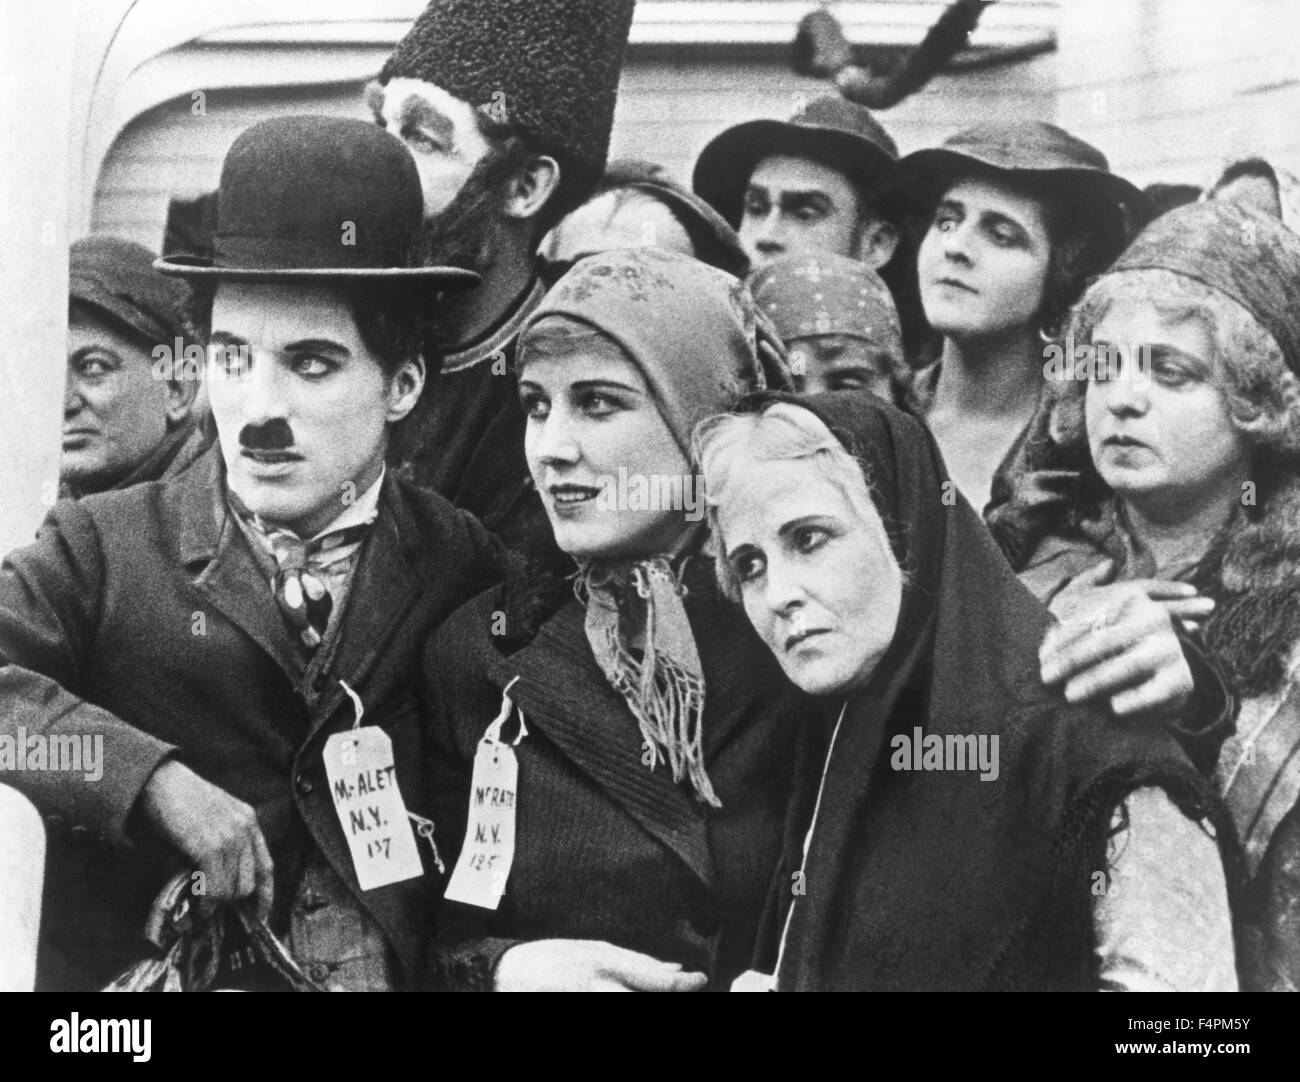 Charles Chaplin and Edna Purviance / The Immigrant / 1917 directed by Charles Chaplin [A Mutual Comedy] - Stock Image